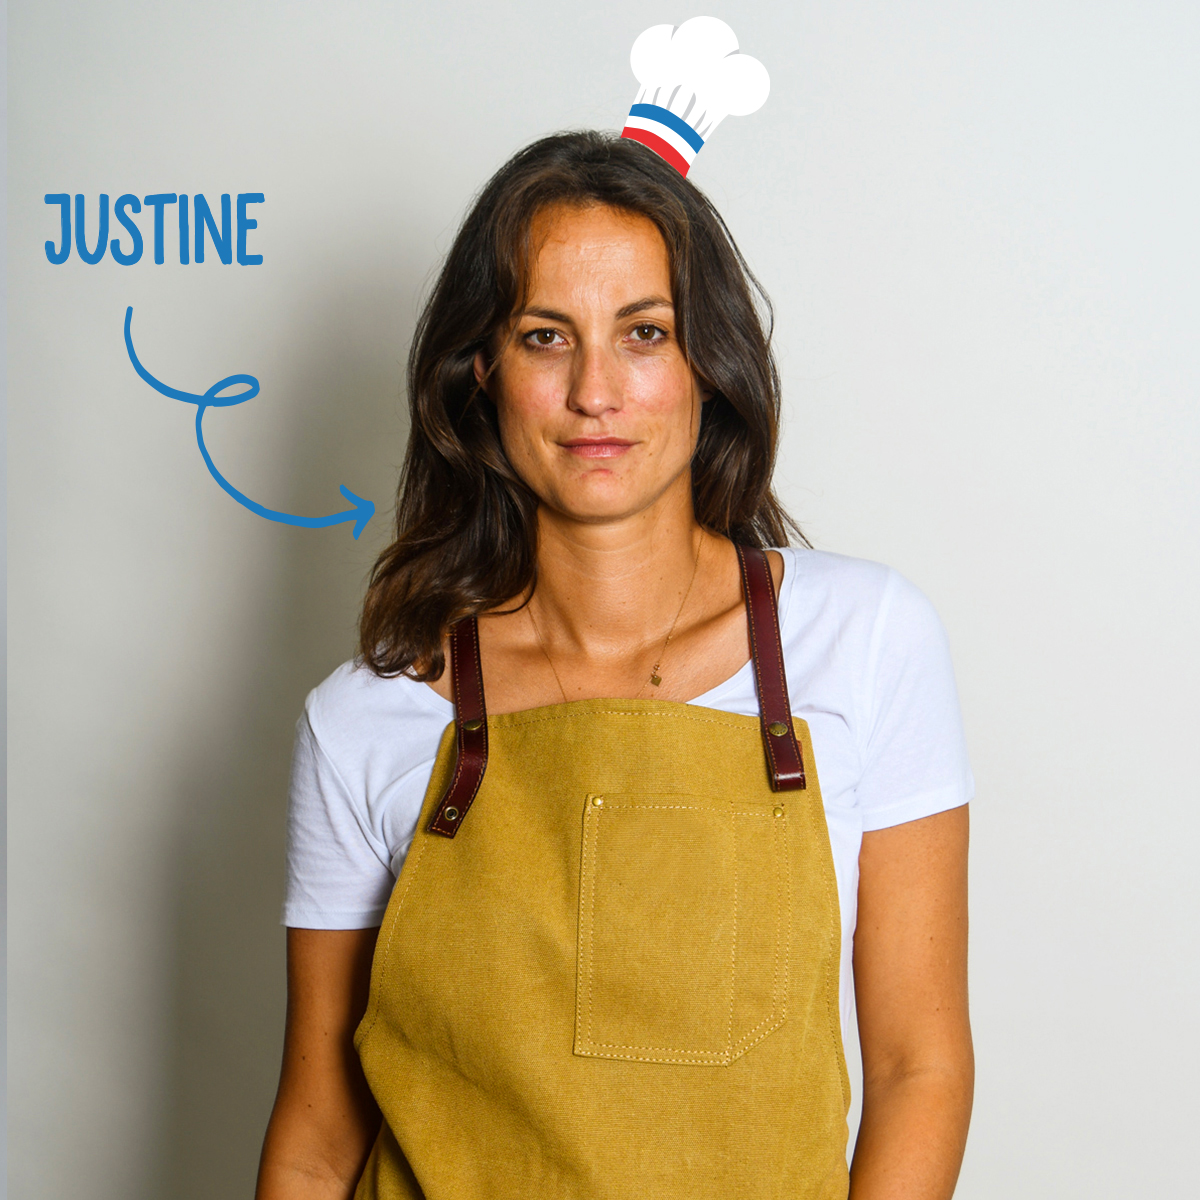 Justine - Le Collectif